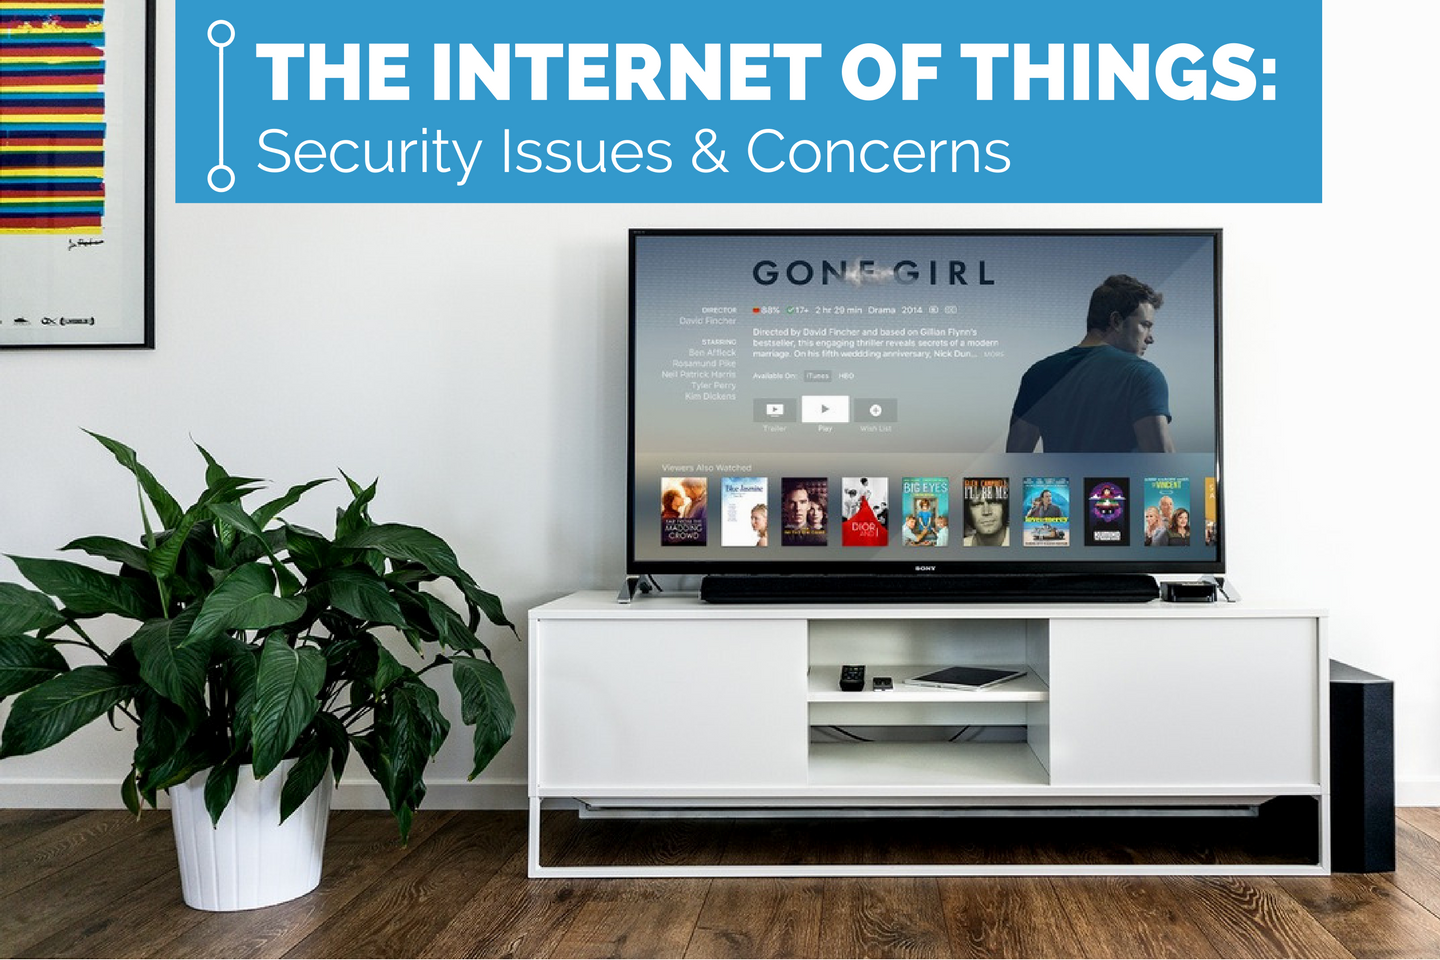 The Internet of Things: Security Issues & Concerns